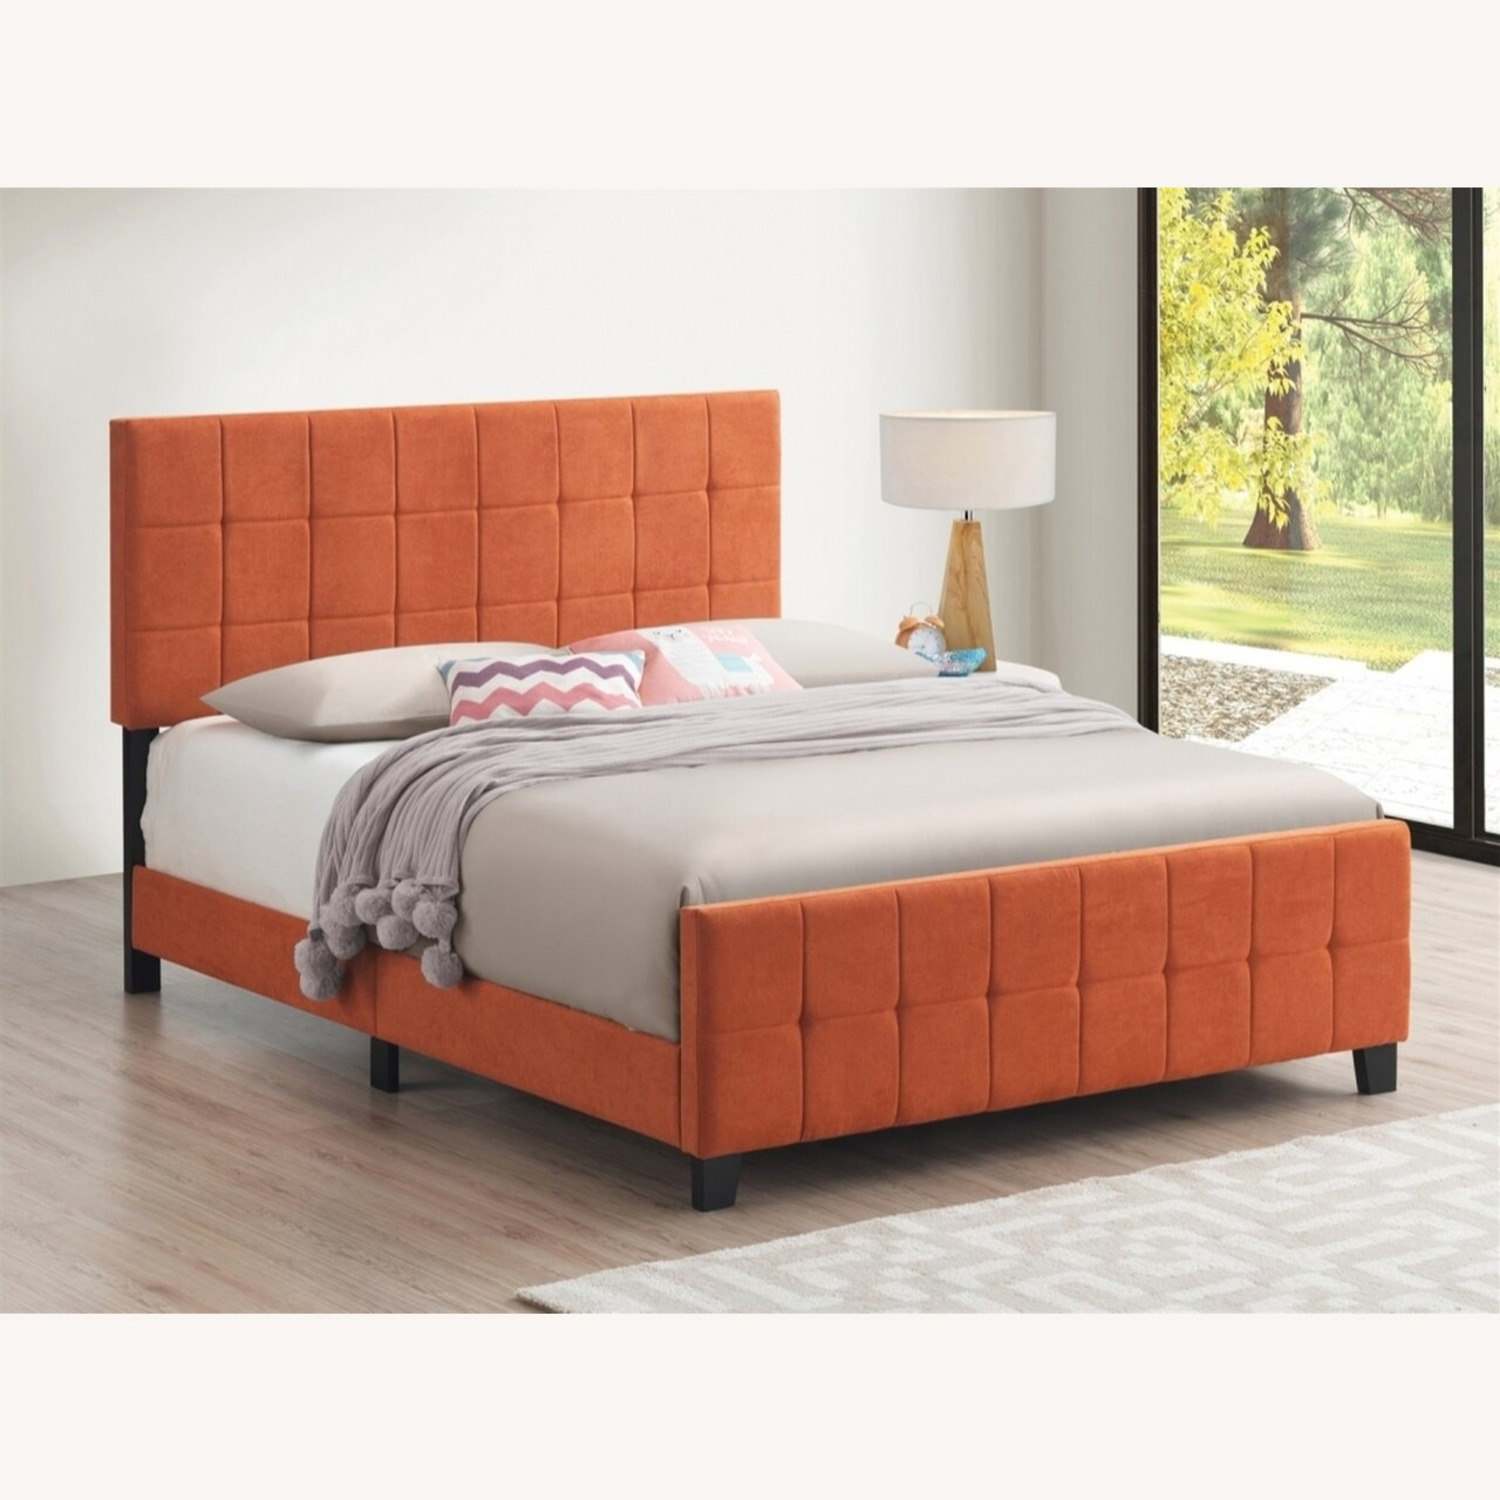 Queen Bed In A Pop Of Color Orange Fabric - image-3